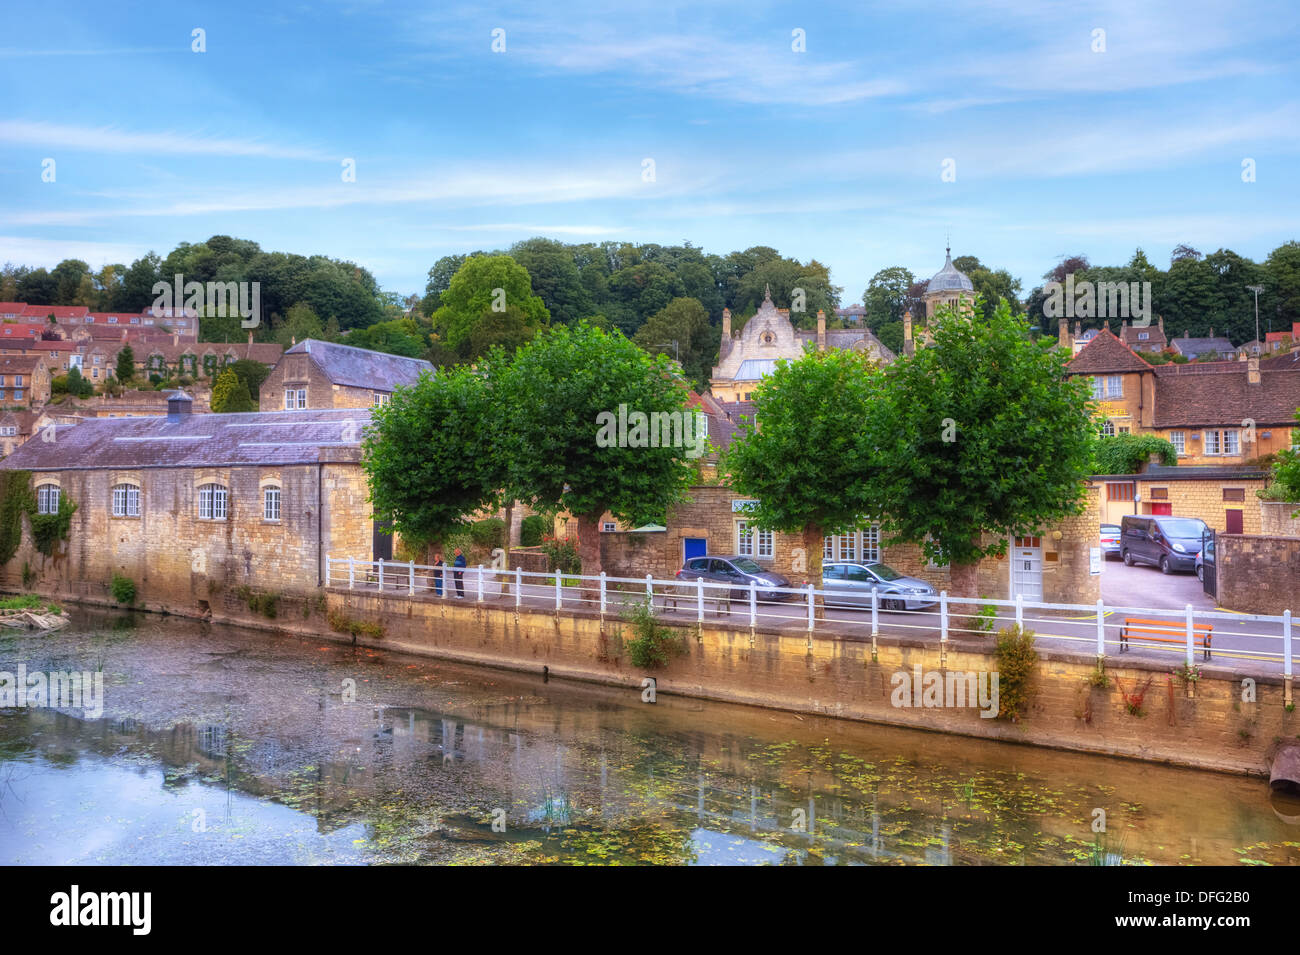 Bradford on Avon, Wiltshire, England, United Kingdom - Stock Image